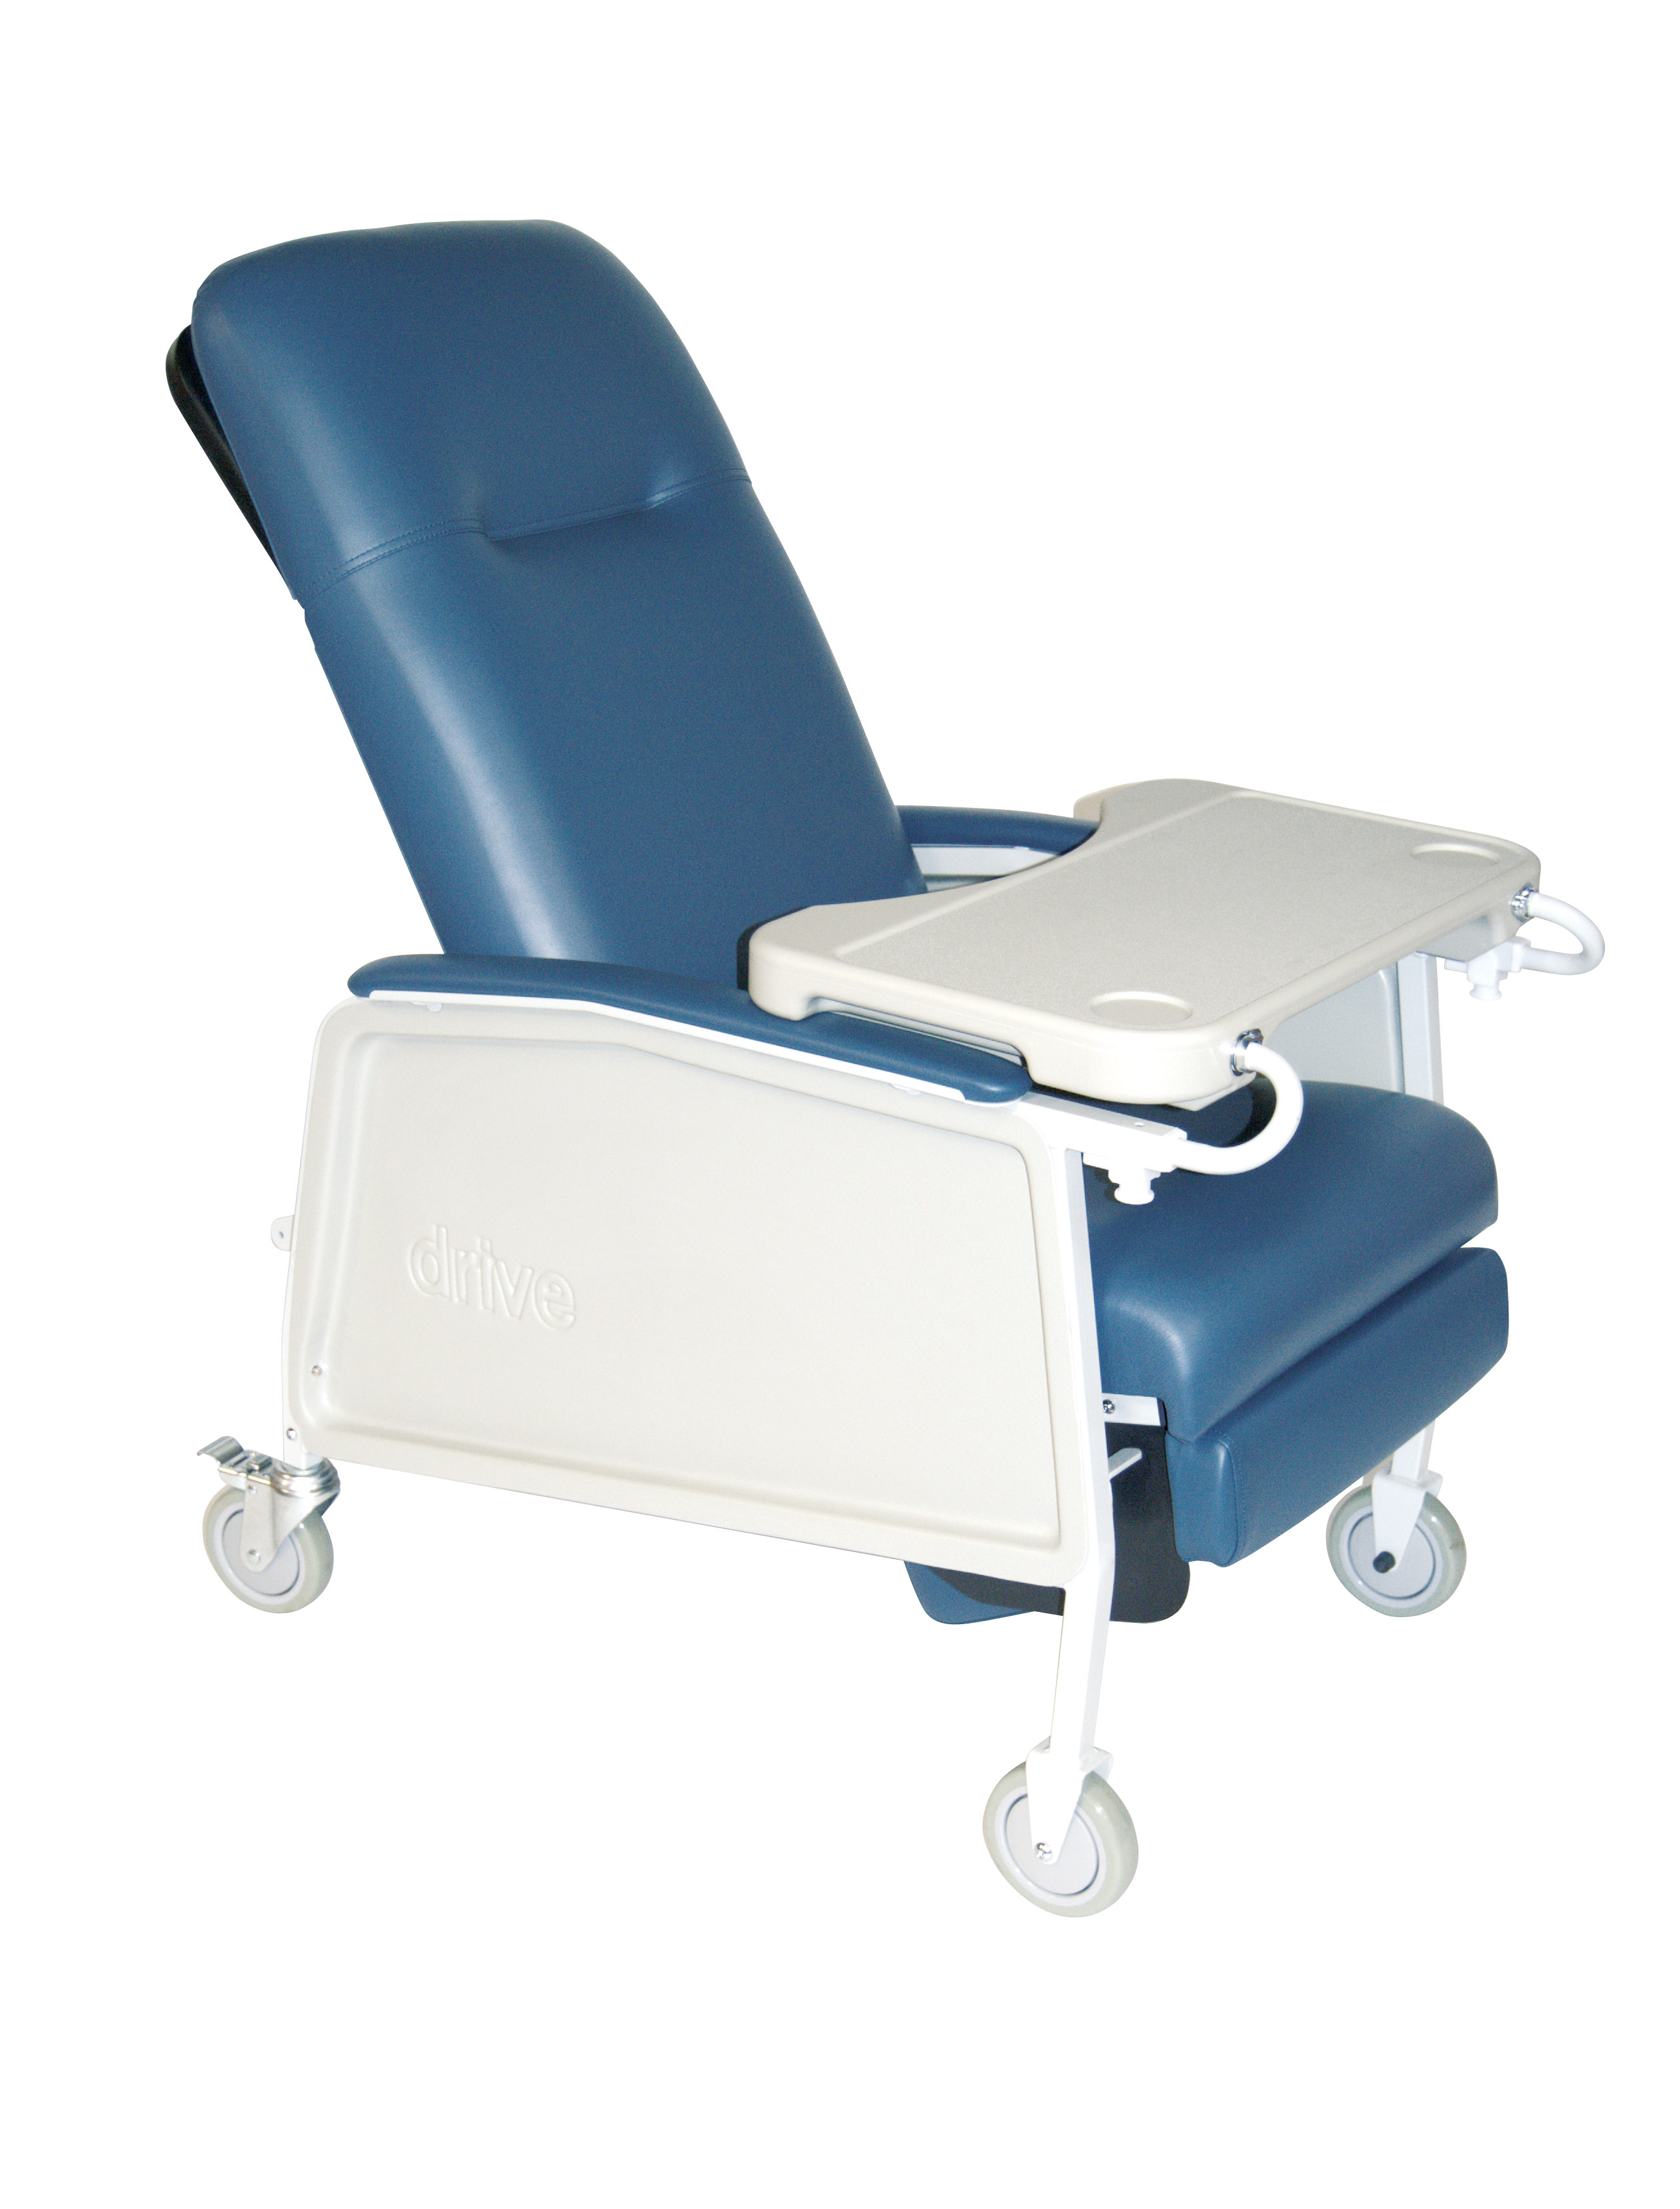 3-Position Bariatric Geri Chair Recliner | AvaCare Medical